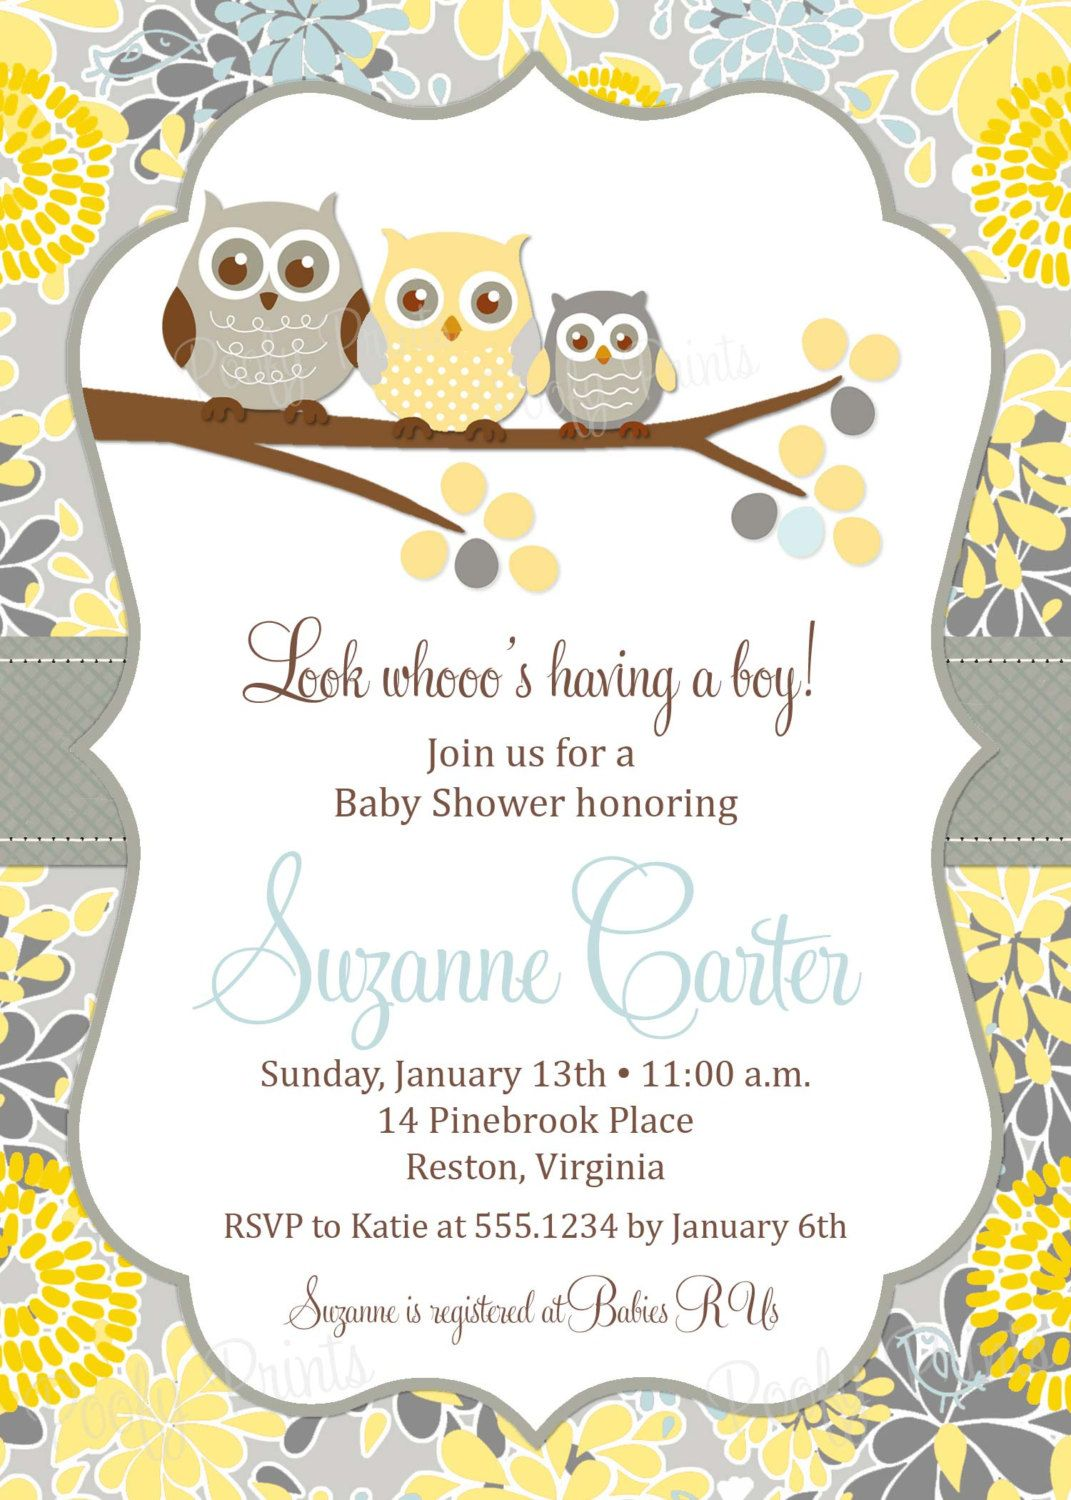 Owl Baby Shower Invitations   DIY Printable Baby Boy Shower Invitations    FREE Favor Tags Included  Baby Shower Invitation Backgrounds Free